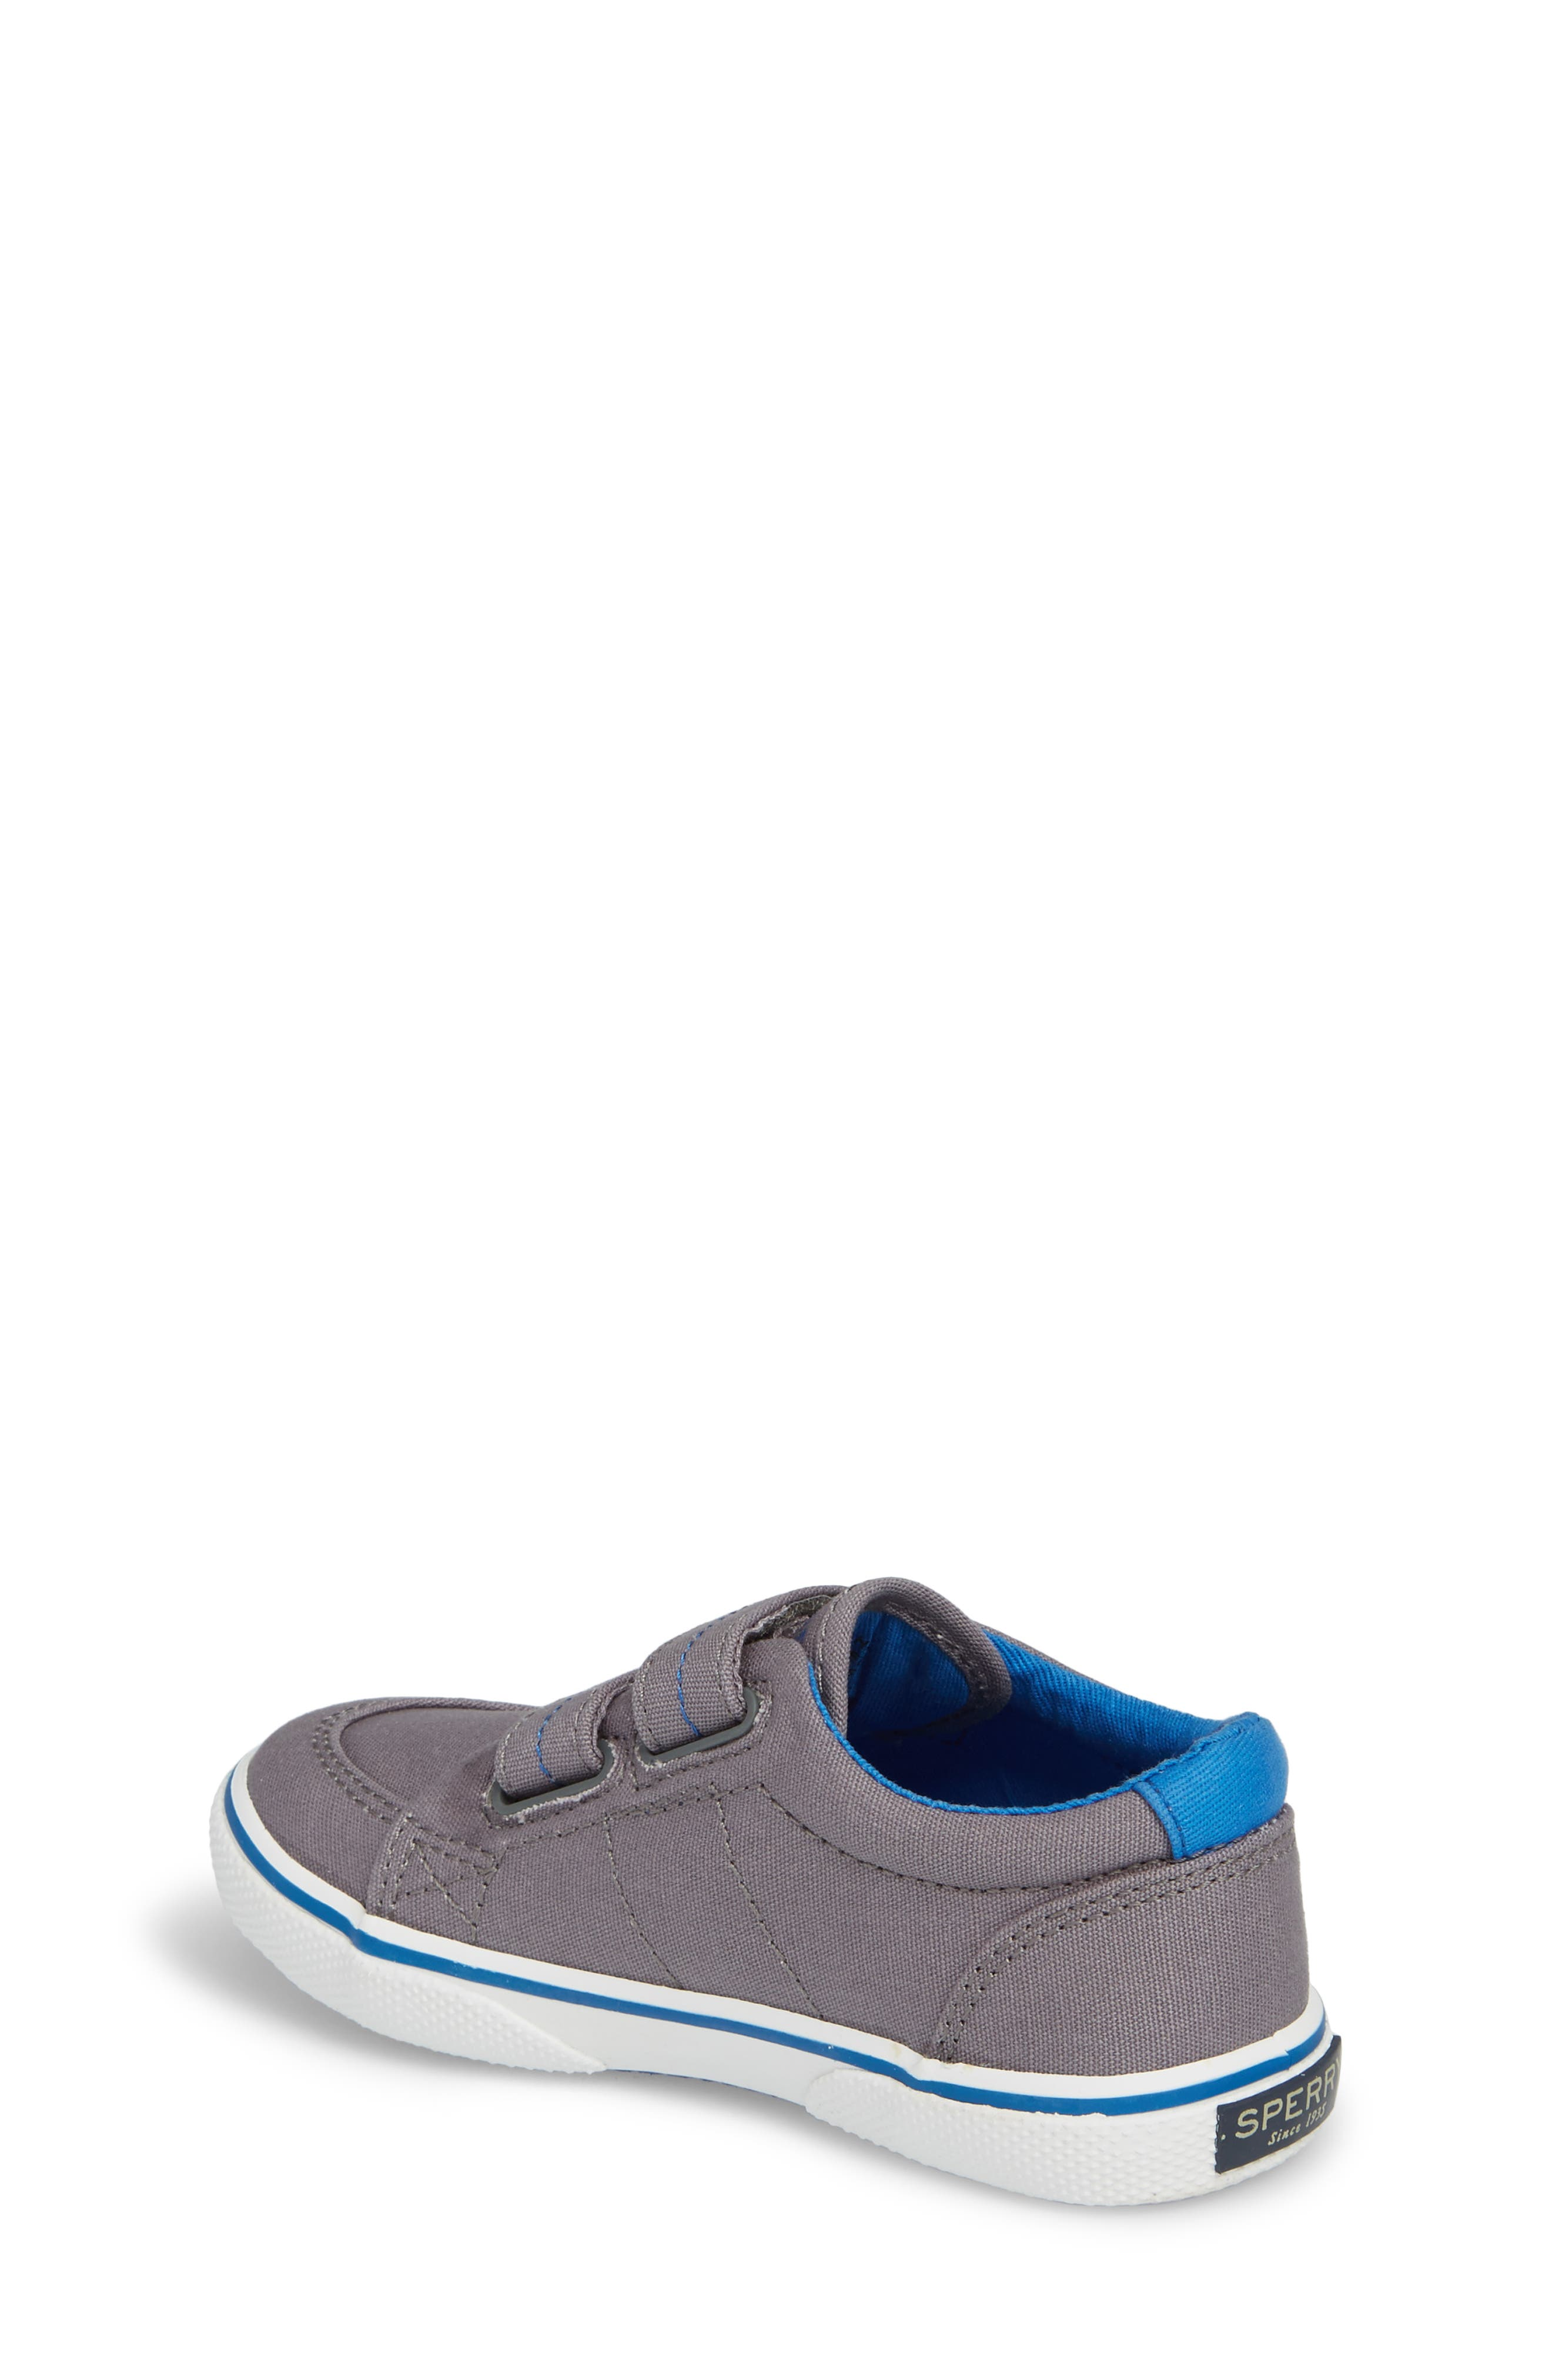 Sperry Top-Sider<sup>®</sup> Kids 'Halyard' Sneaker,                             Alternate thumbnail 6, color,